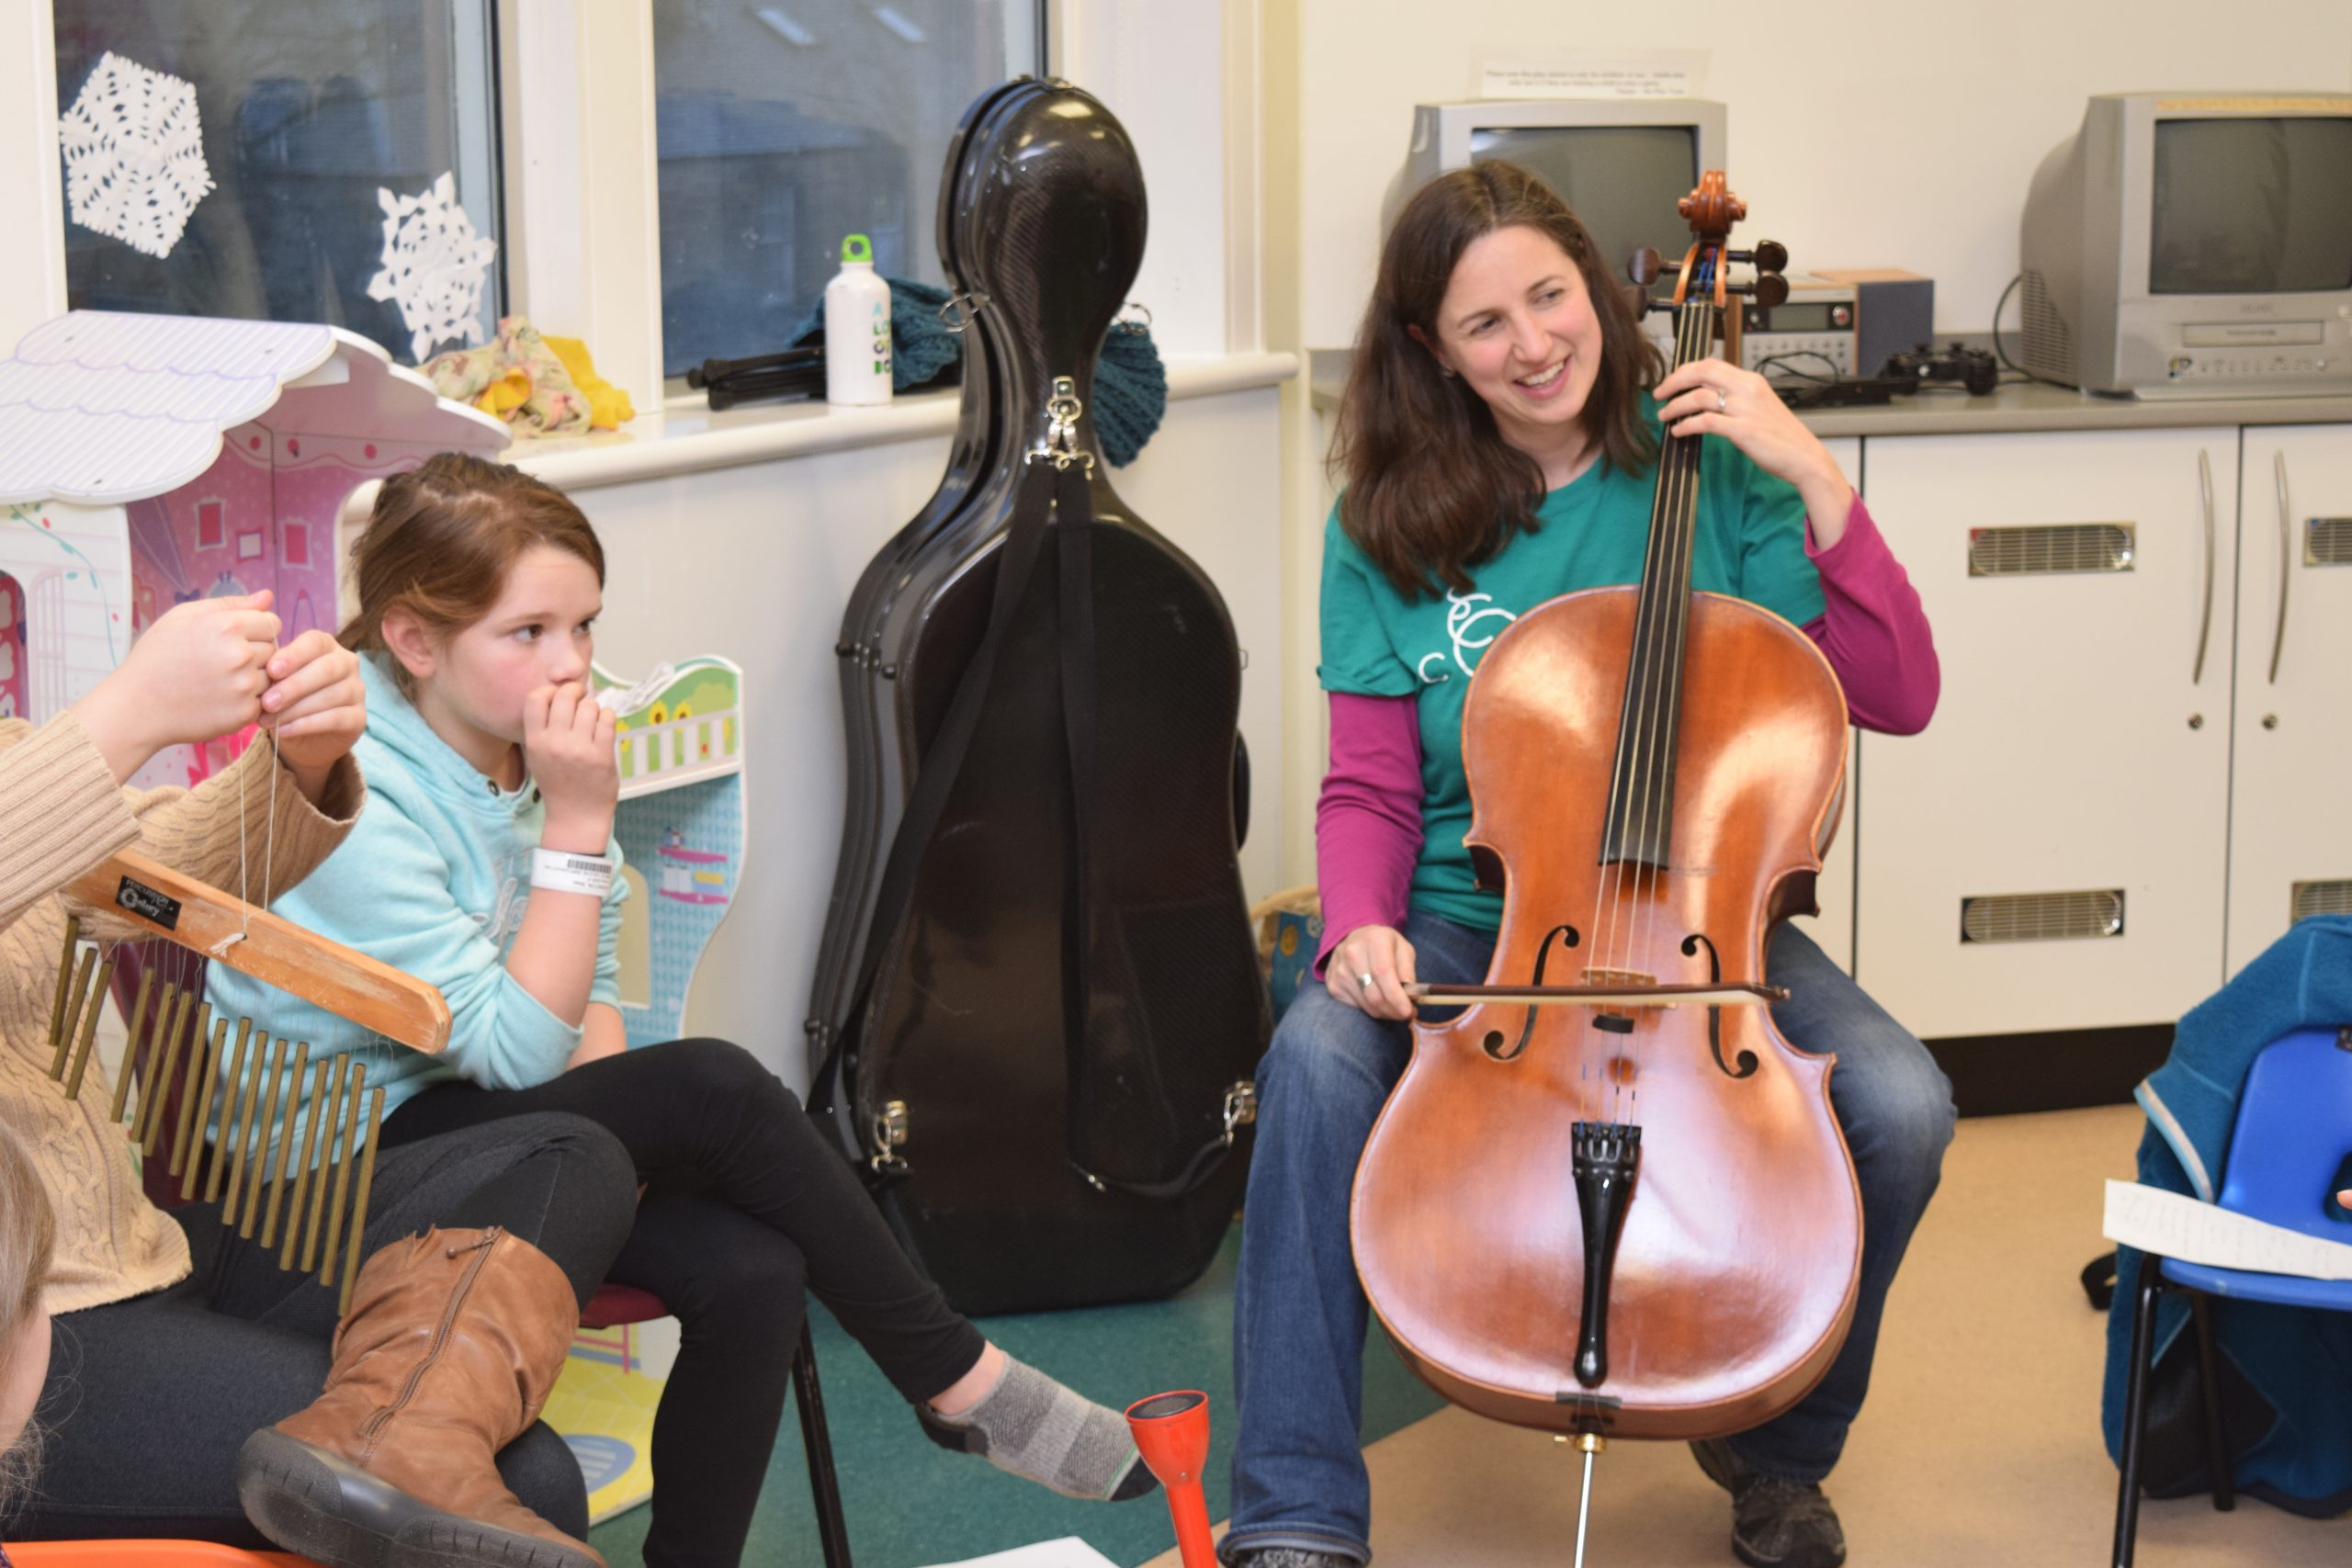 Children's Ward Uses Music To Relax And Entertain Young Patients